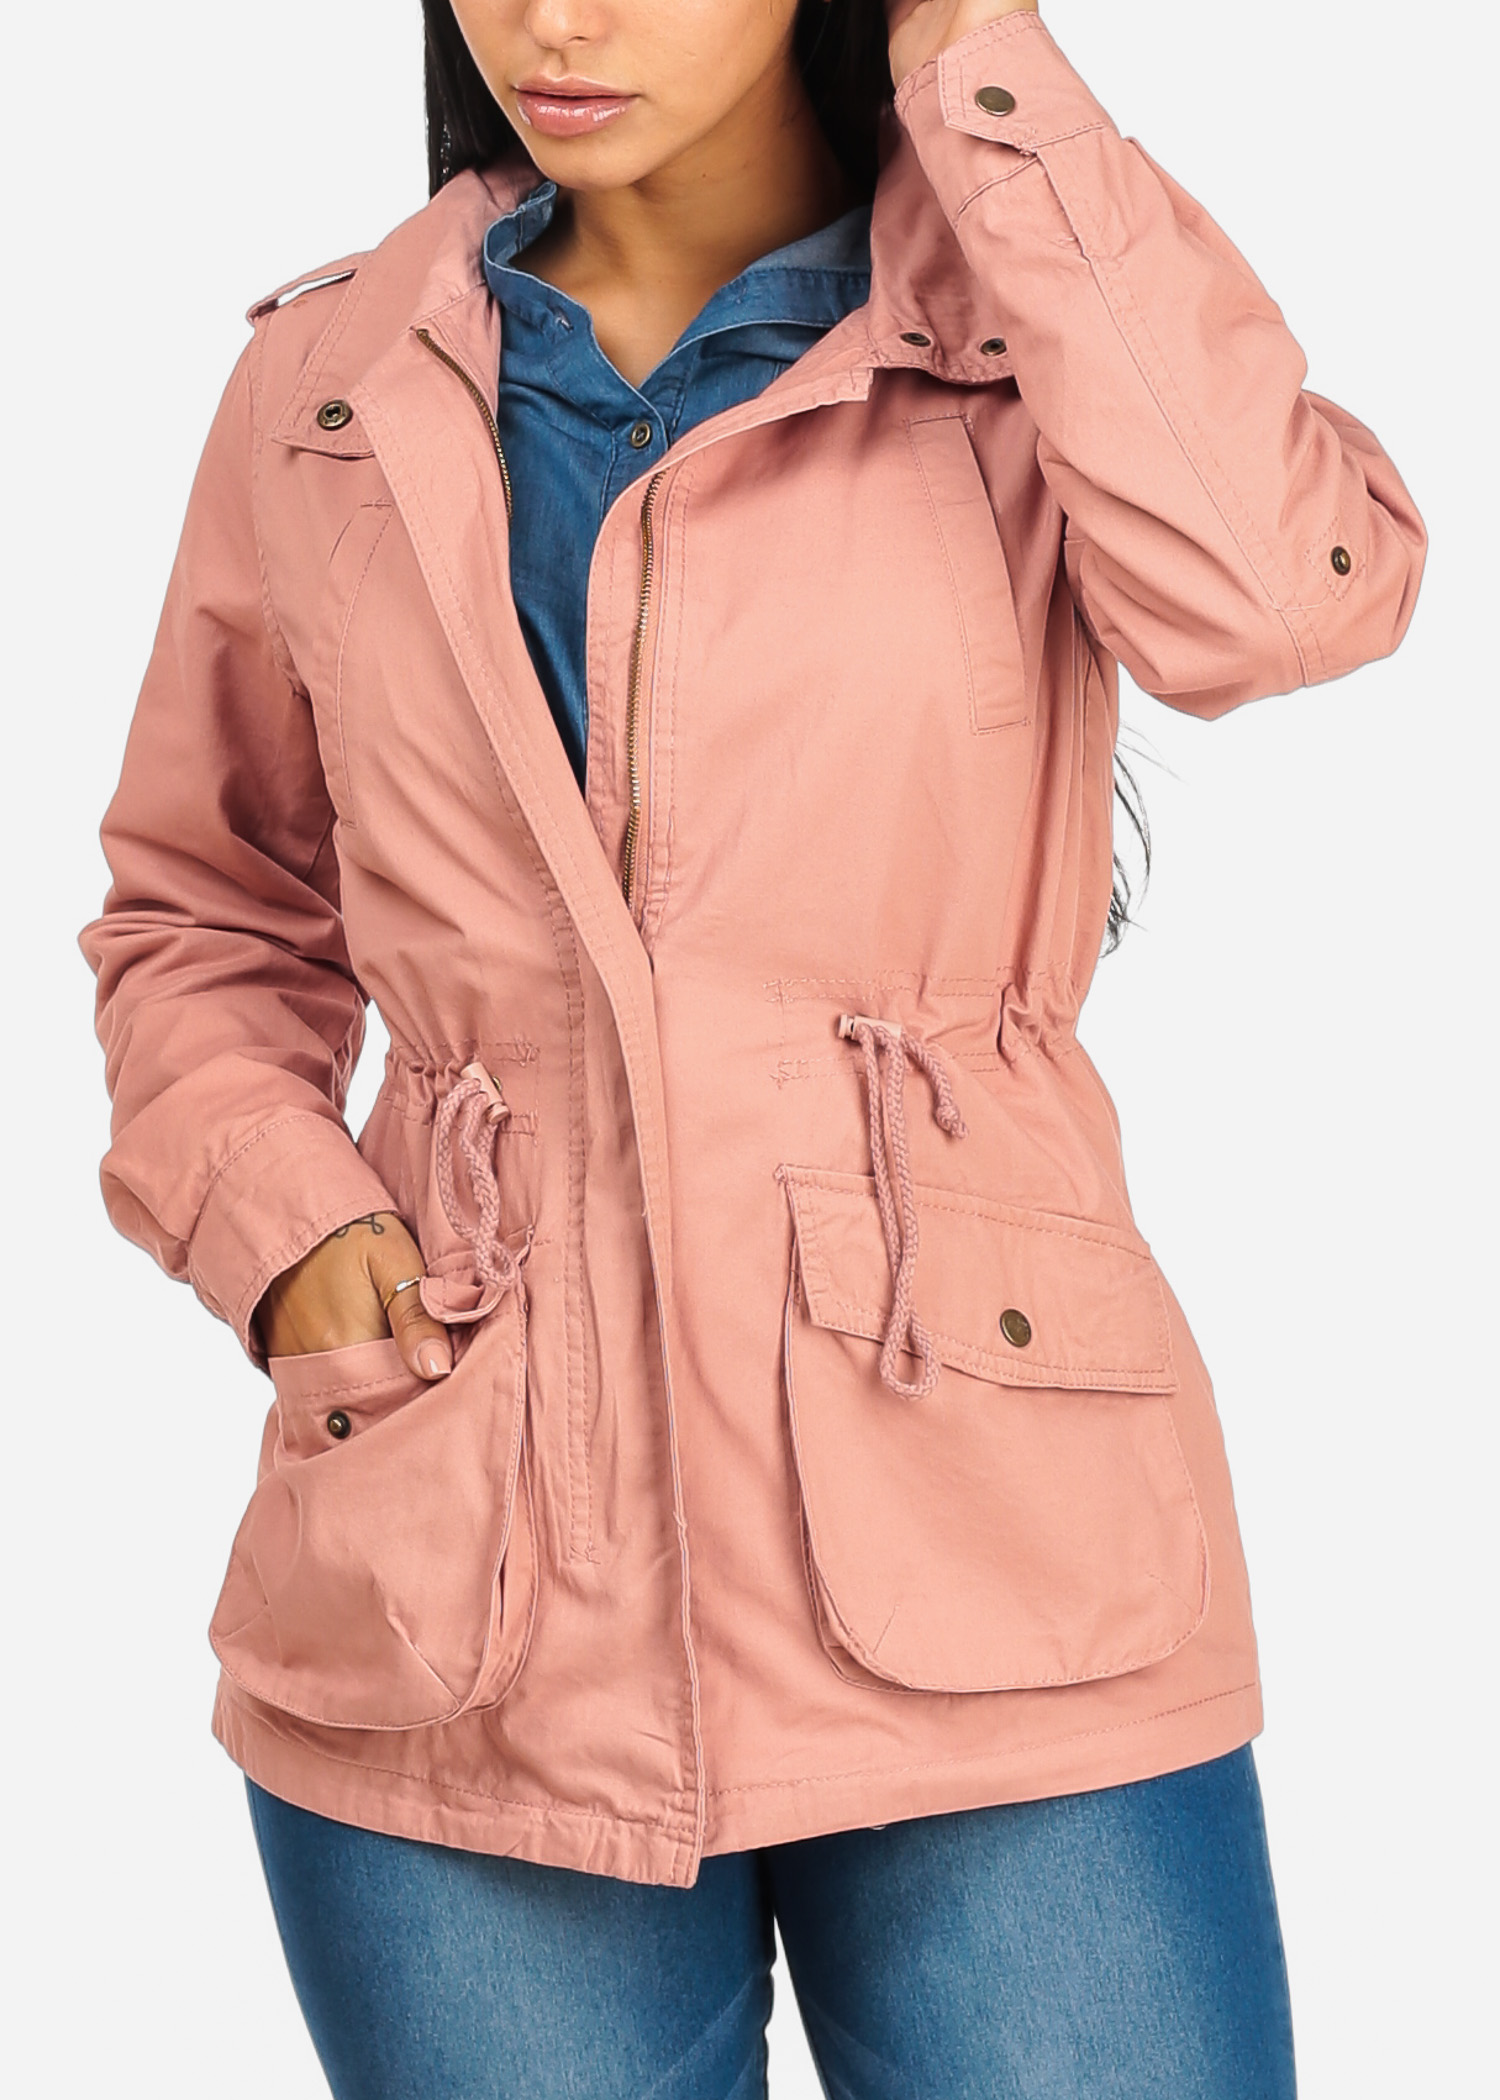 Womens Juniors Cargo Style Long Sleeve Front Pockets Zip Up Mauve Jacket 41541P